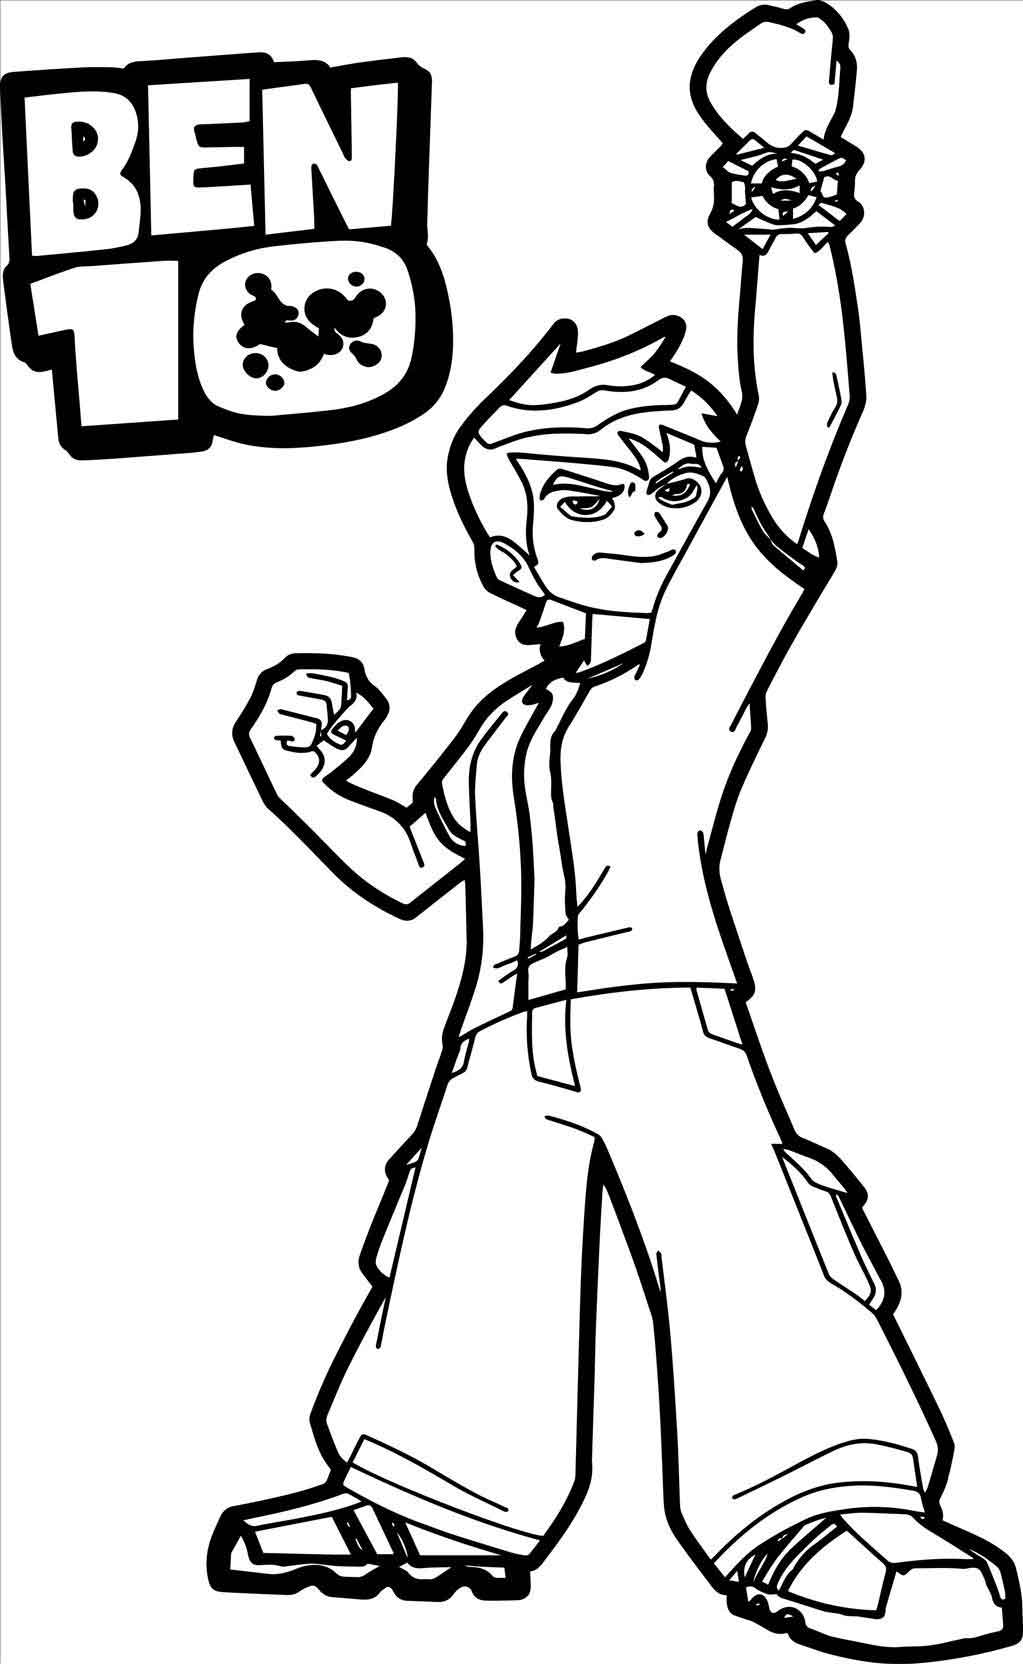 ben 10 for coloring ben 10 coloring pages coloring for ben 10 1 1